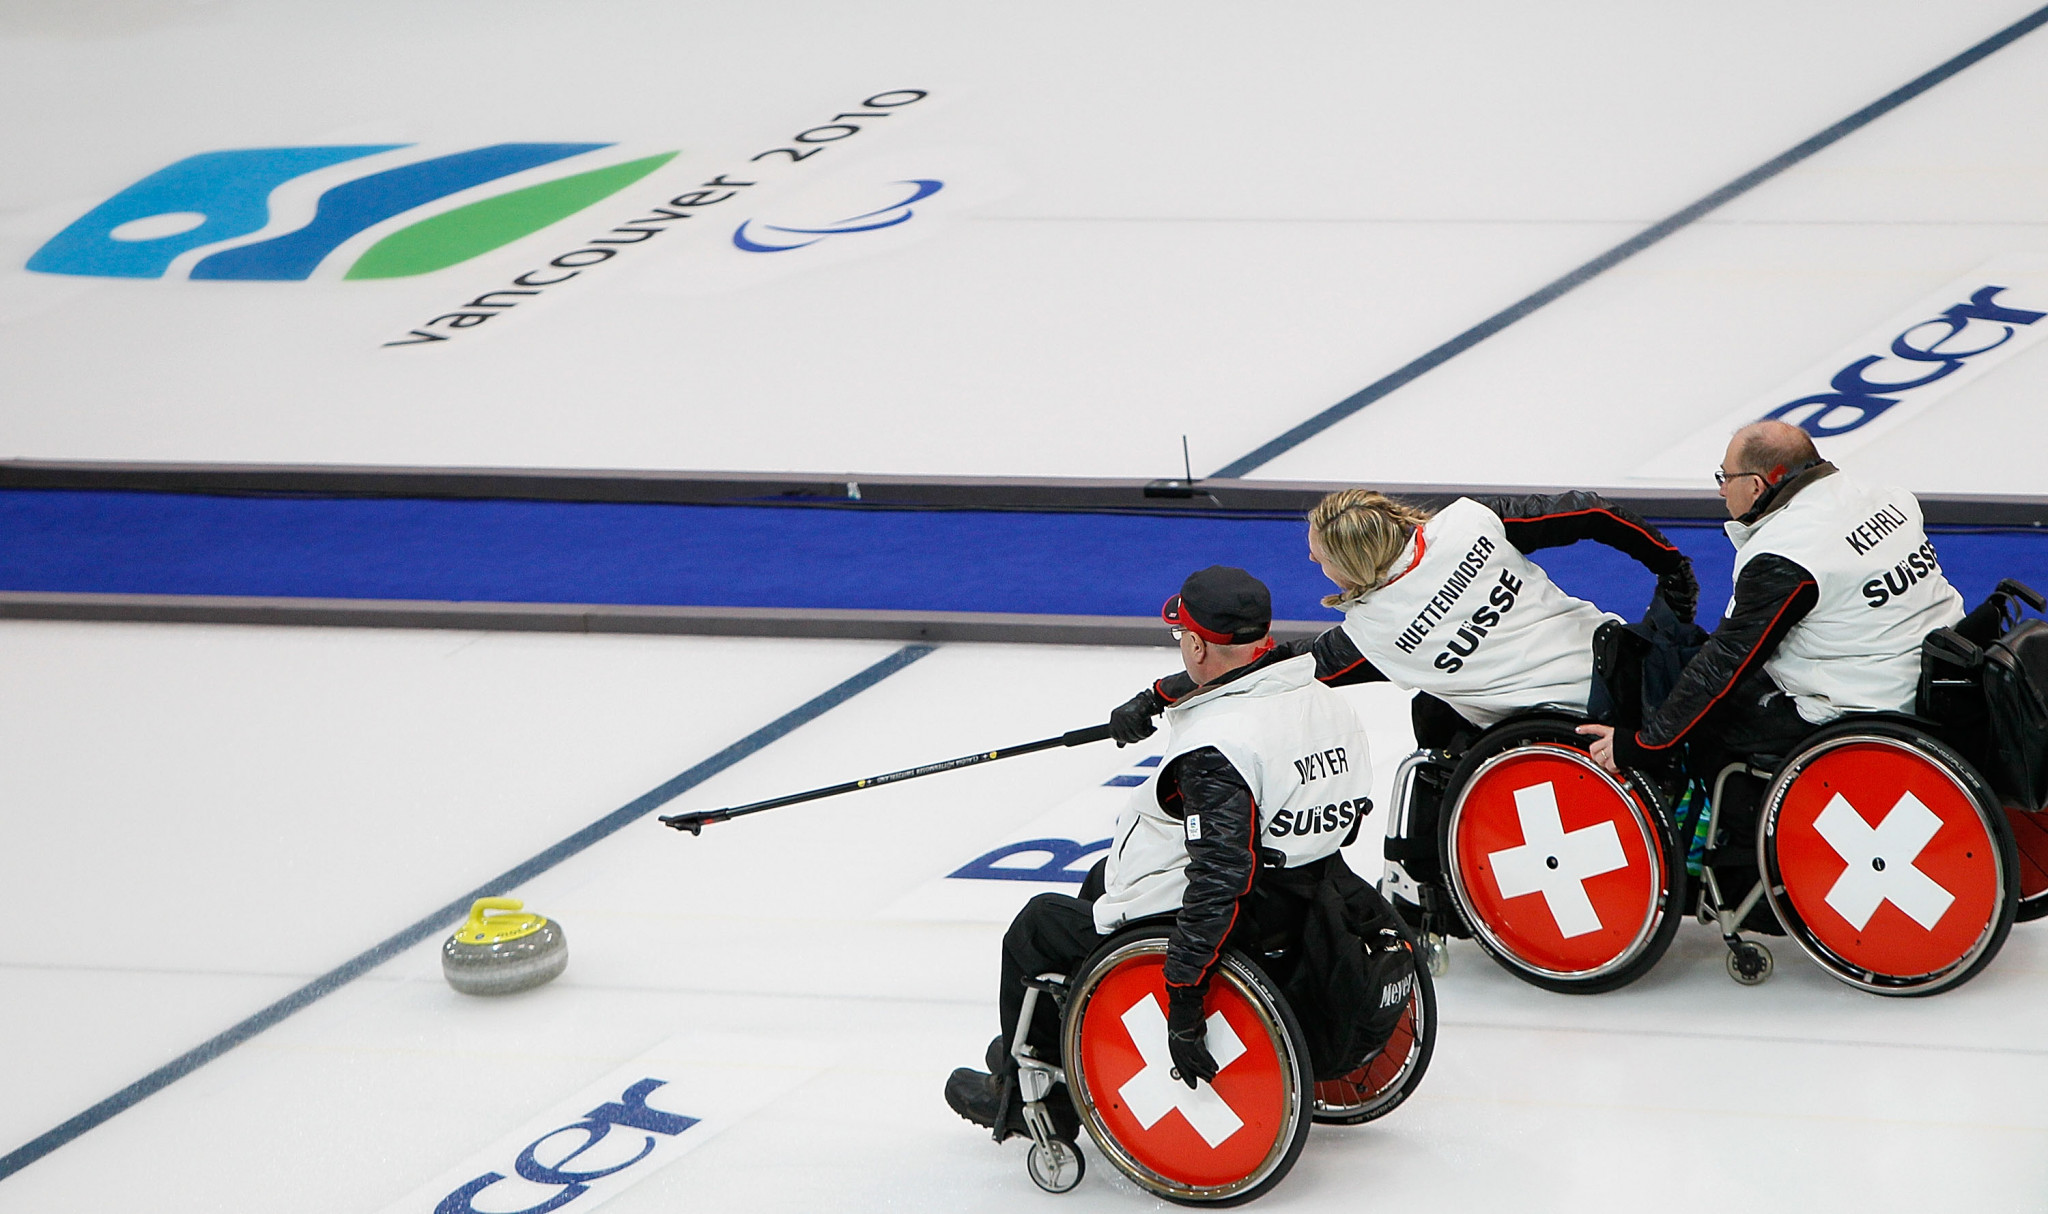 The Swiss wheelchair curling team appeared at the Vancouver 2010 Paralympics ©Getty Images